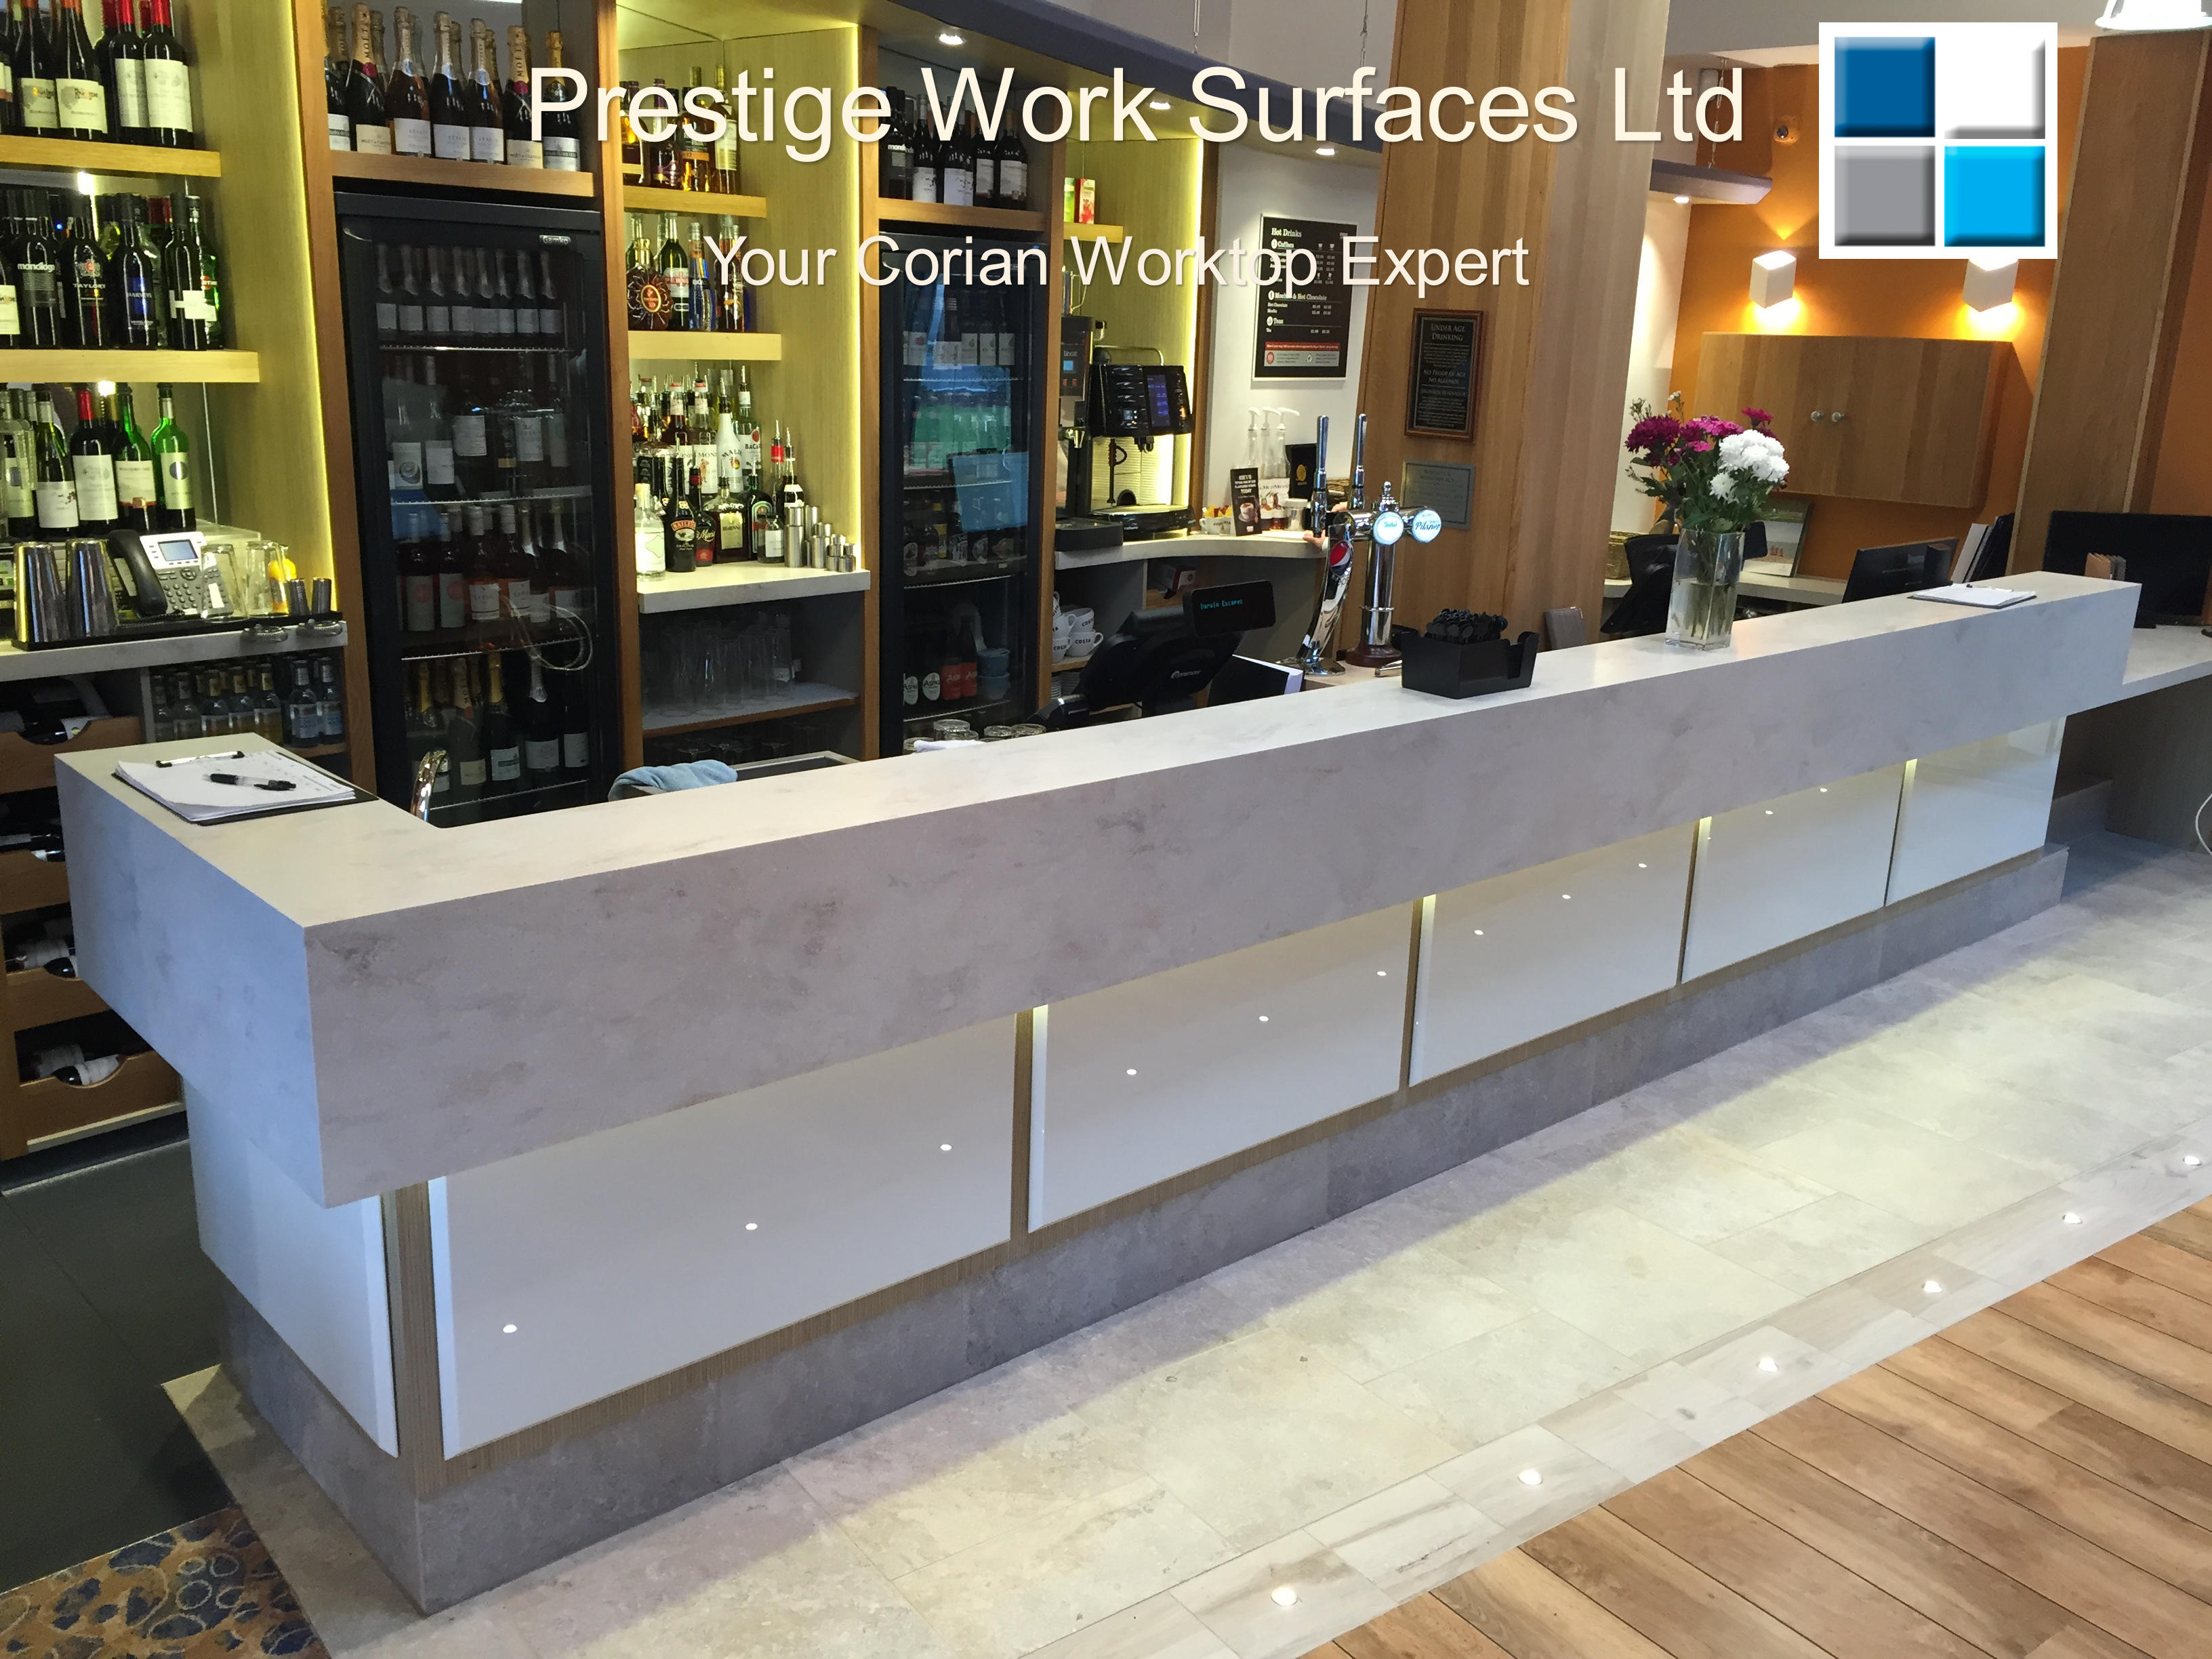 Your Corian Worktop Expert. Prestige Work Surfaces